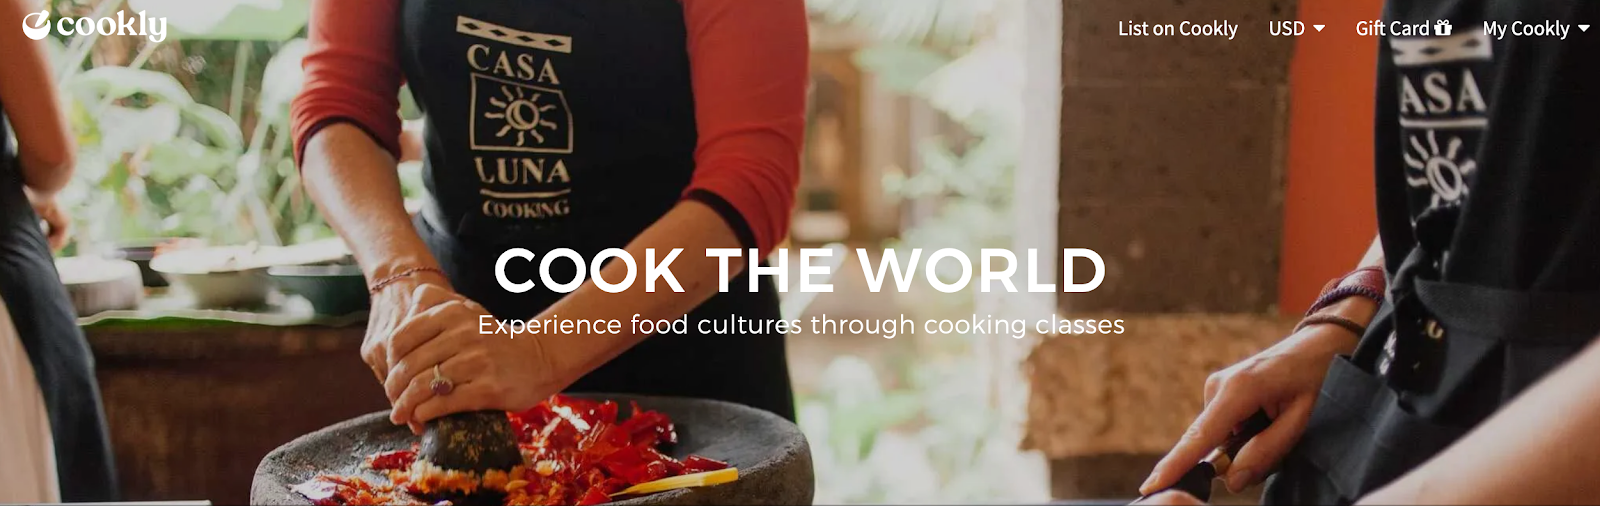 Cookly: Experience Food Cultures Through Food Classes